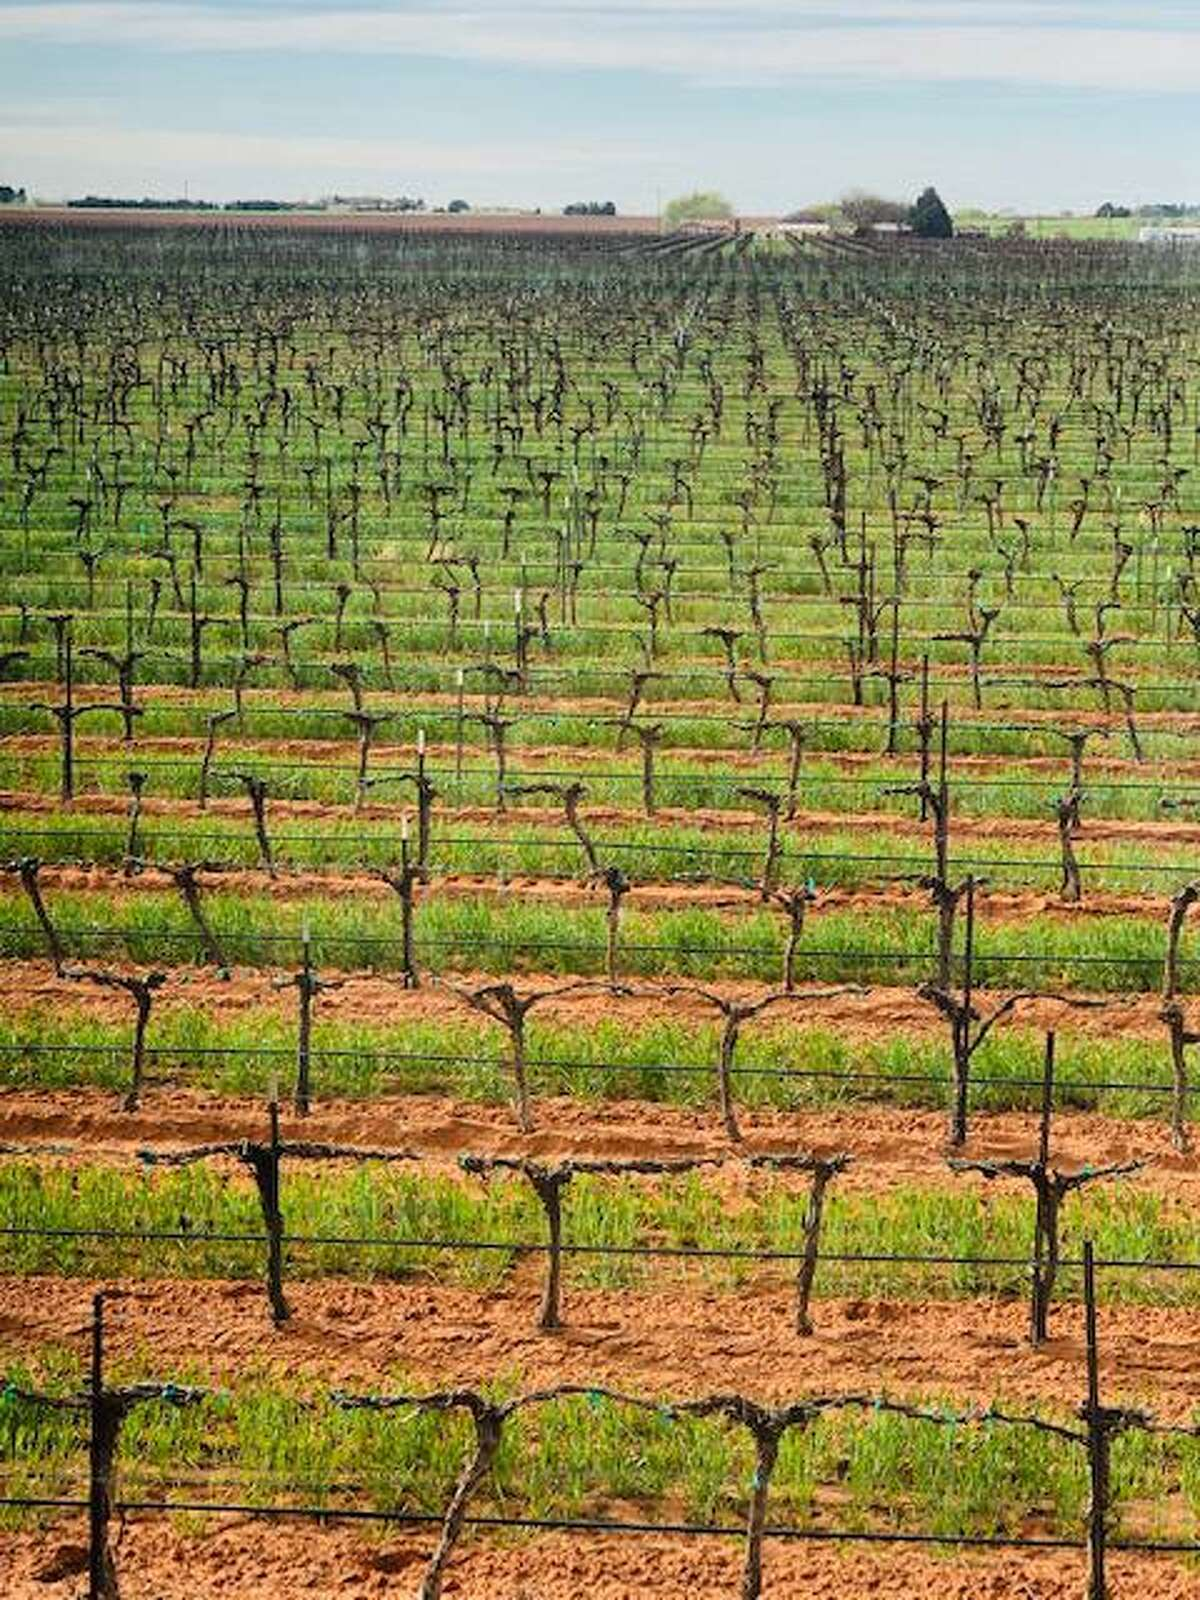 A look across the expanse at Reddy Vineyards in the Texas Panhandle.